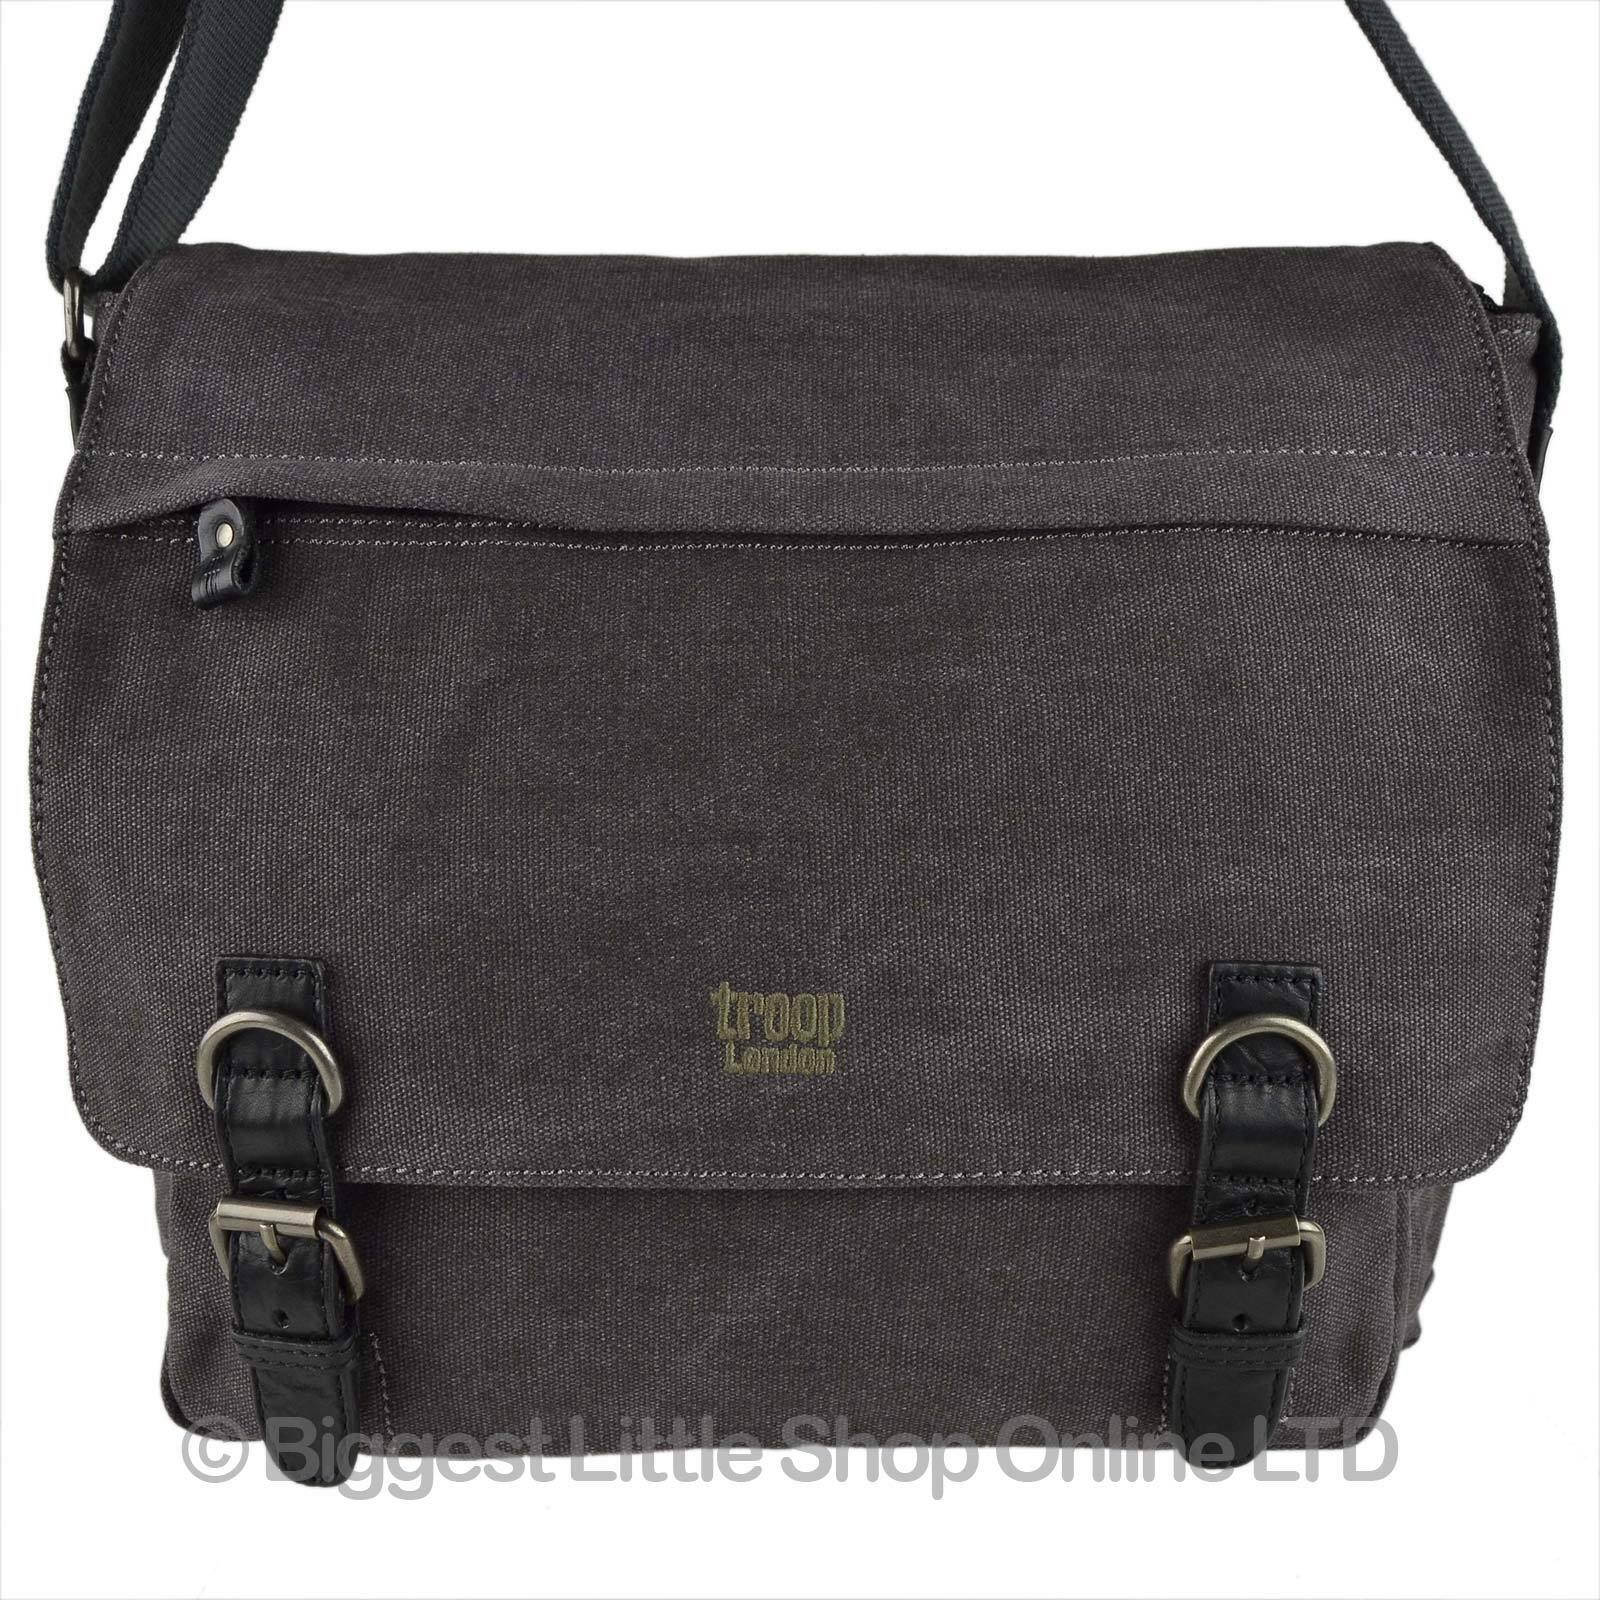 Neuf Neuf Neuf Hommes Femmes Grand Toile Cuir Messager Sac Bandoulière par Troop London 9a1542